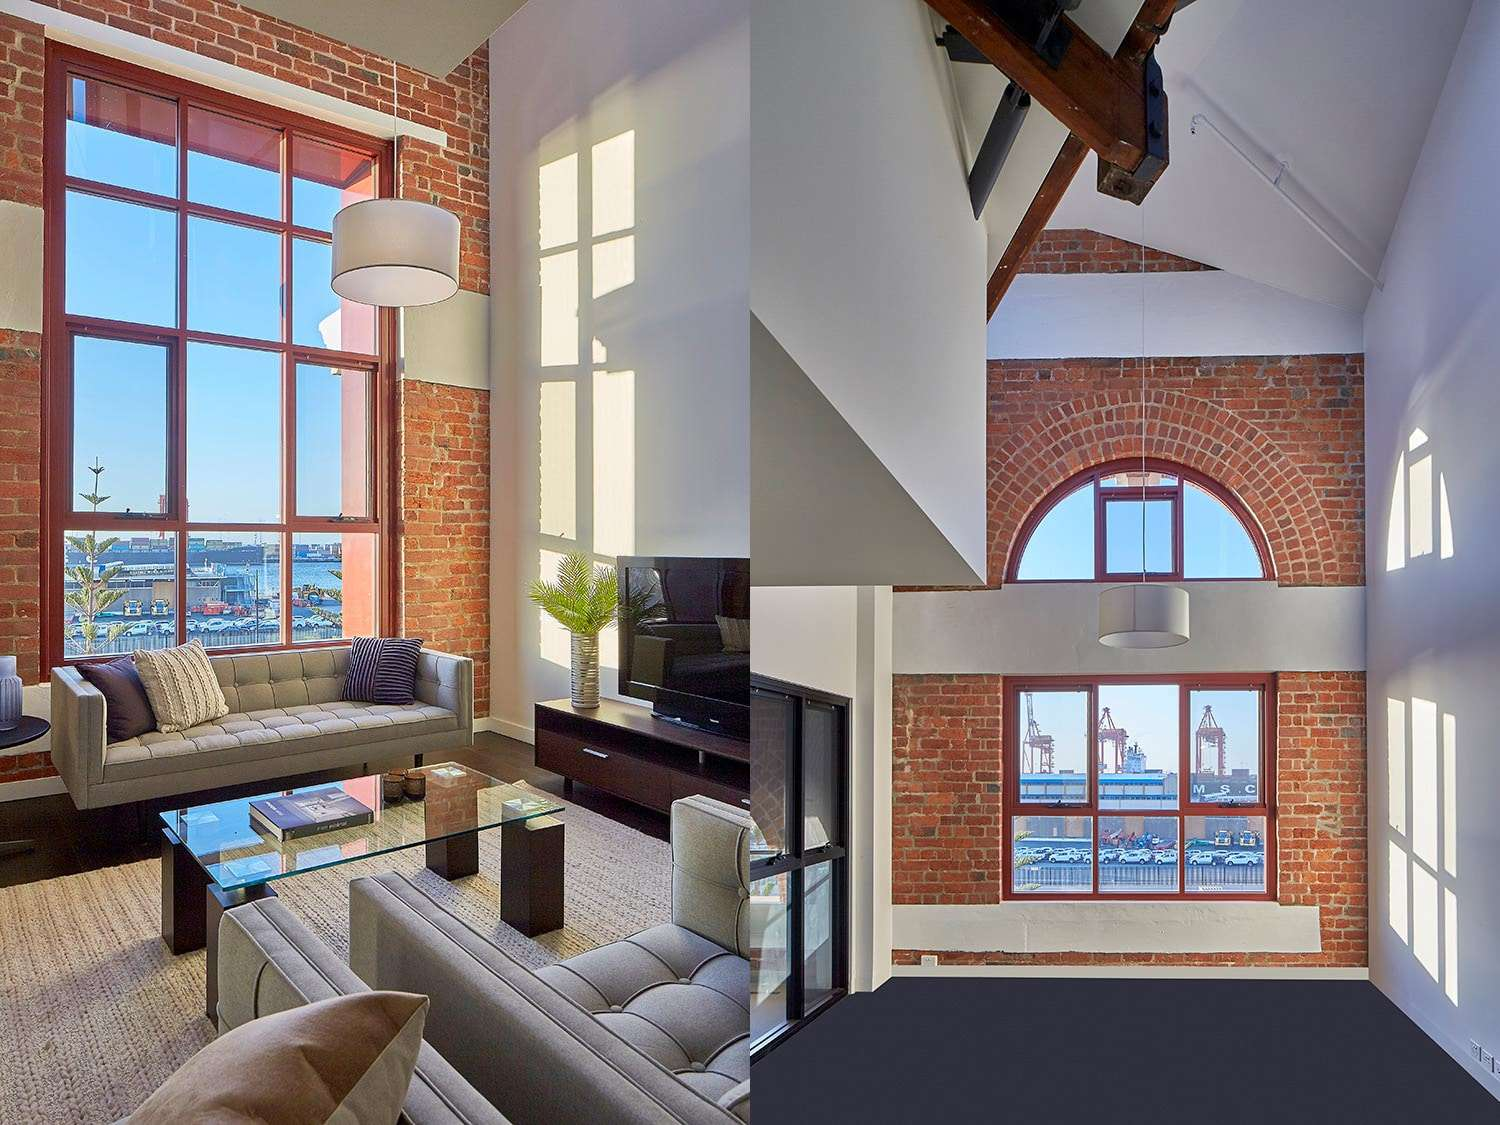 Heirloom Heritage Apartments, Fremantle - Living Room Window and Arch Window